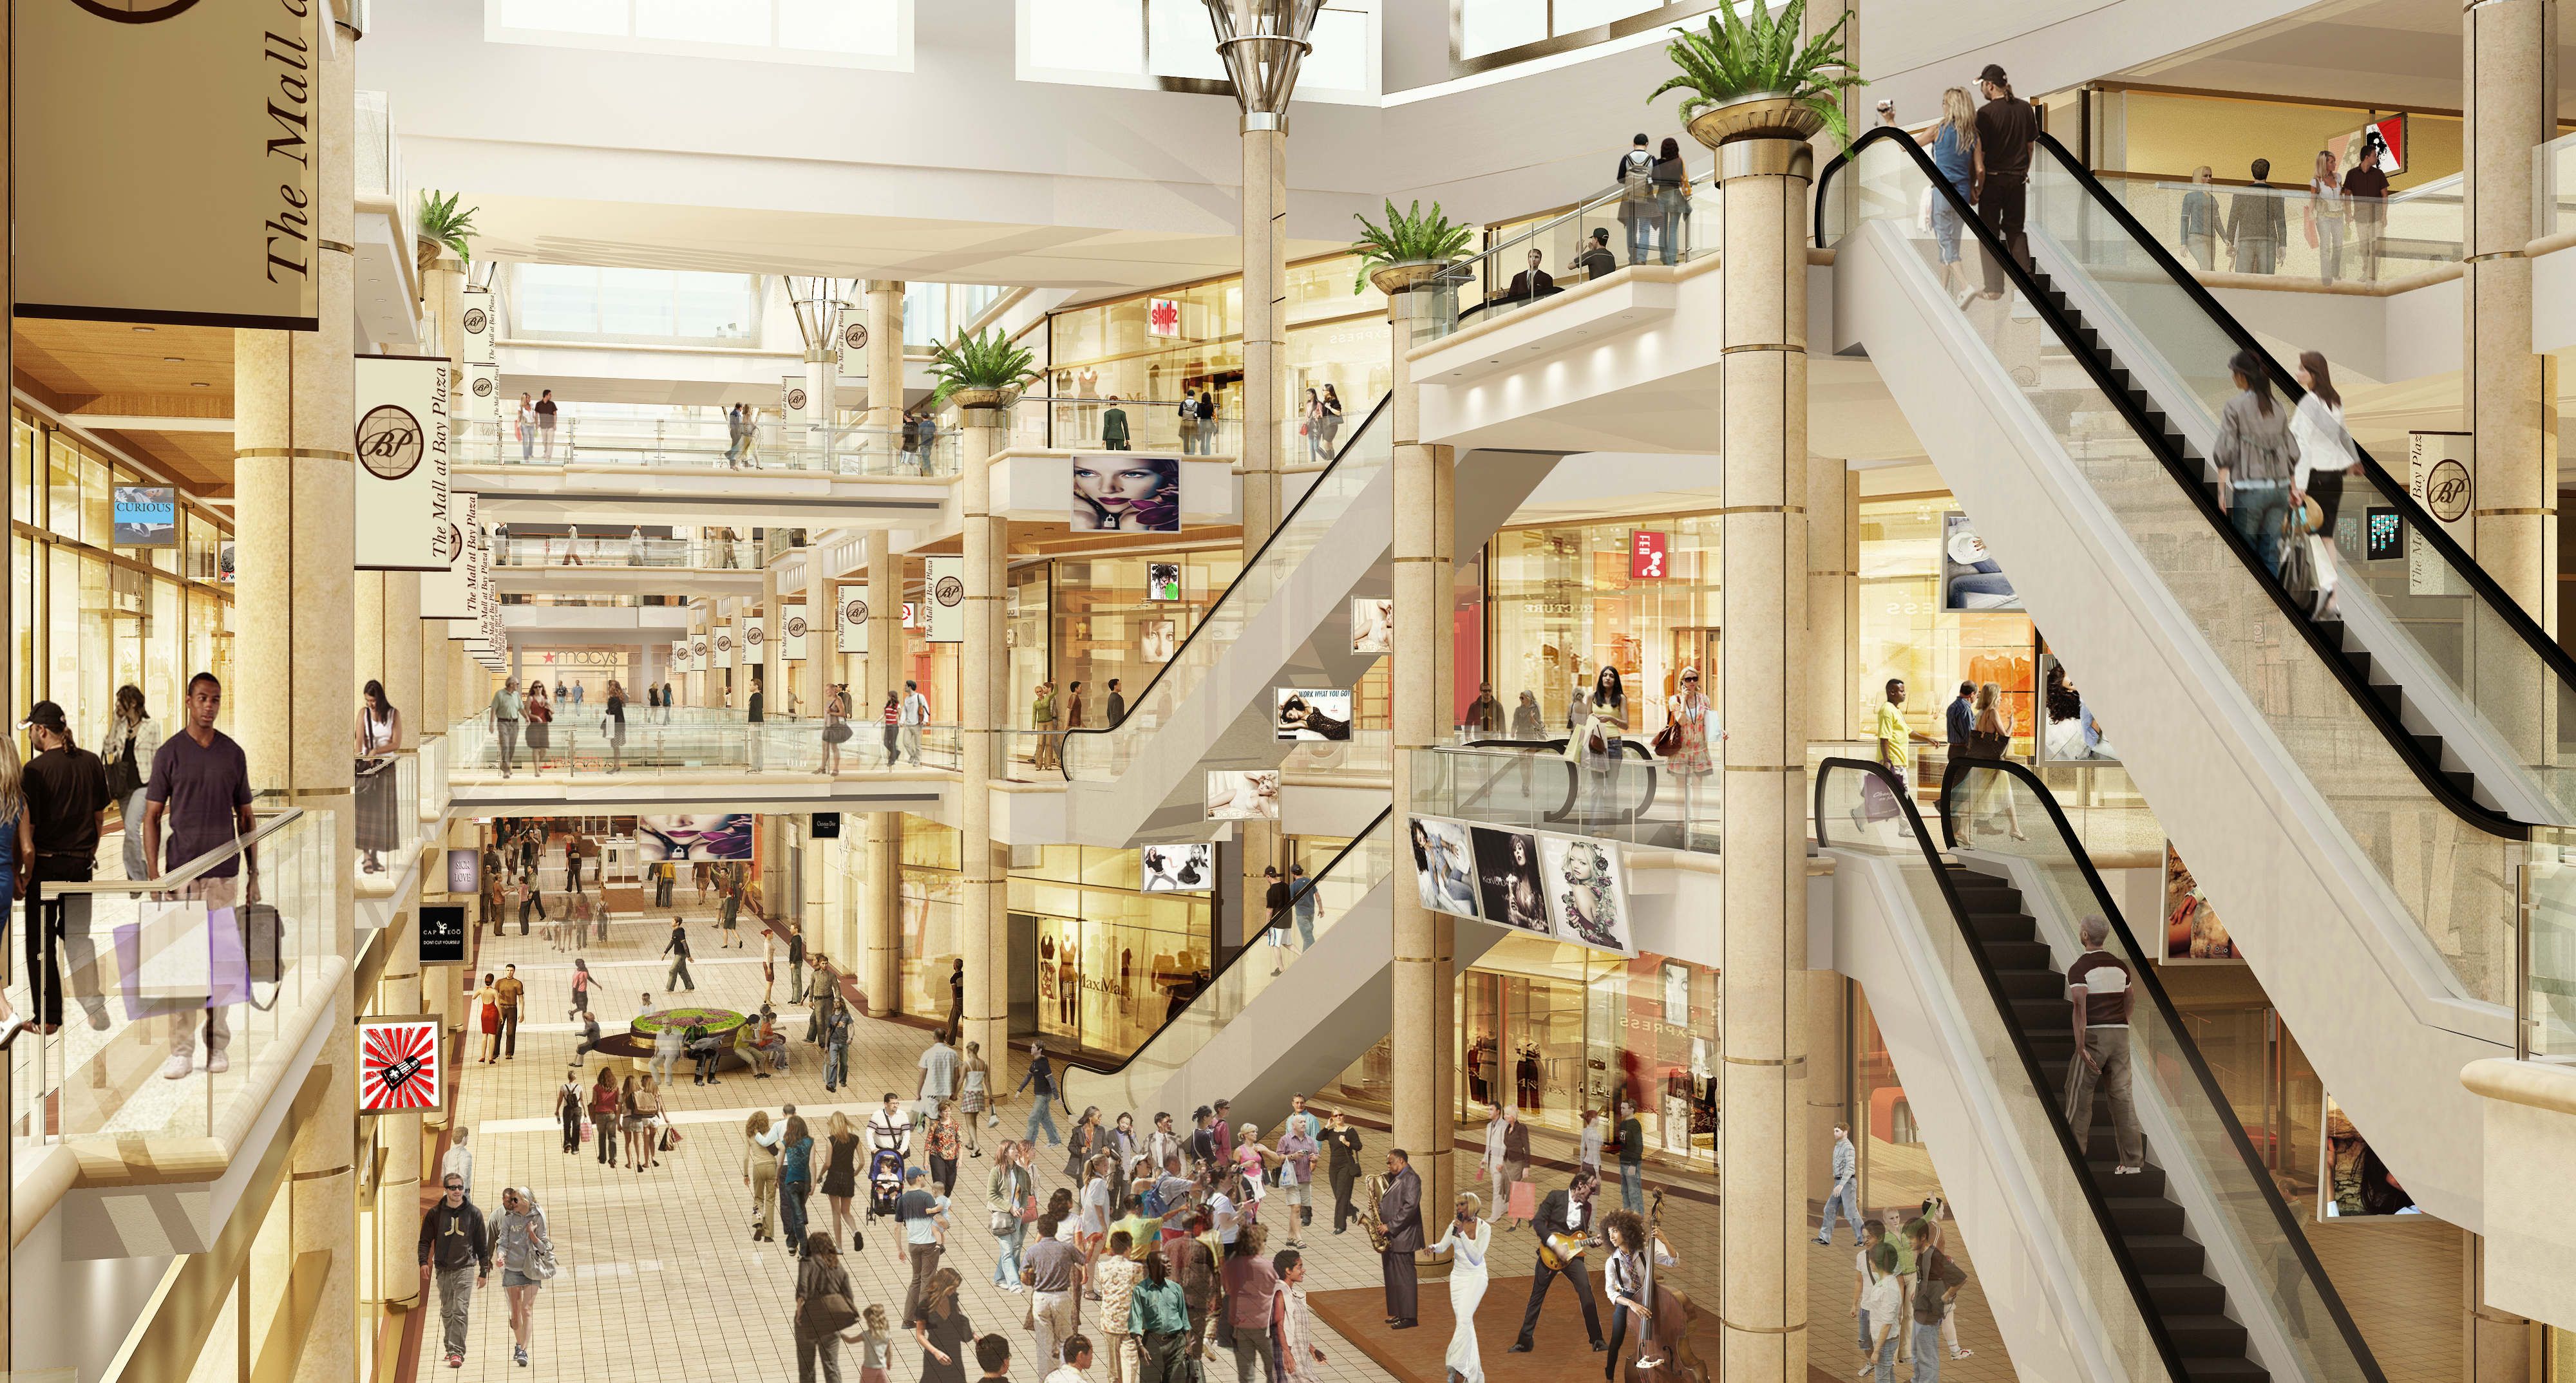 Countdown Starts To Opening Of First Nyc Mall In 40 Years